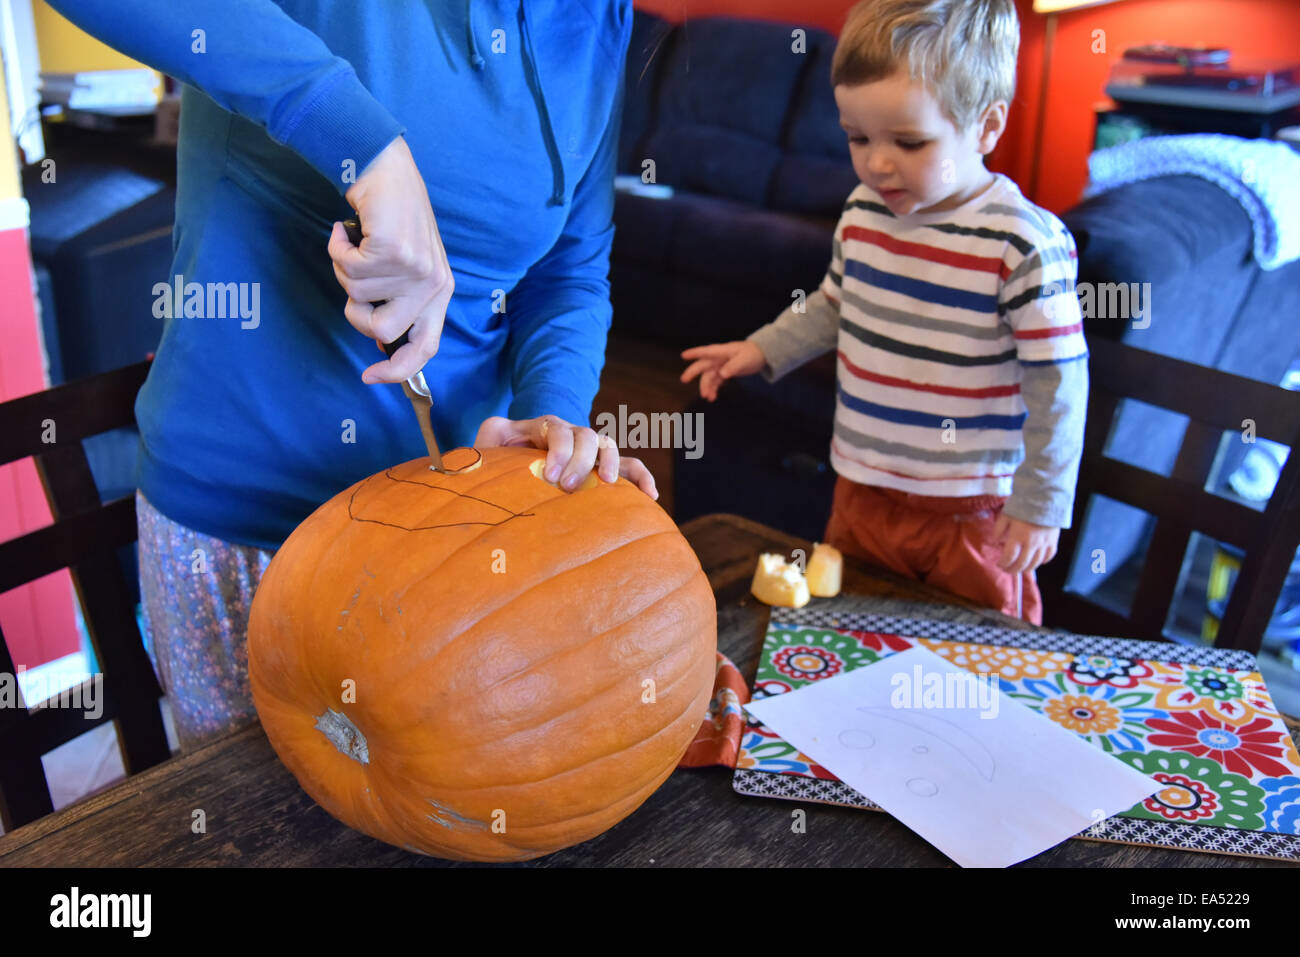 A mother carving a face in a pumpkin while her son watches - Stock Image